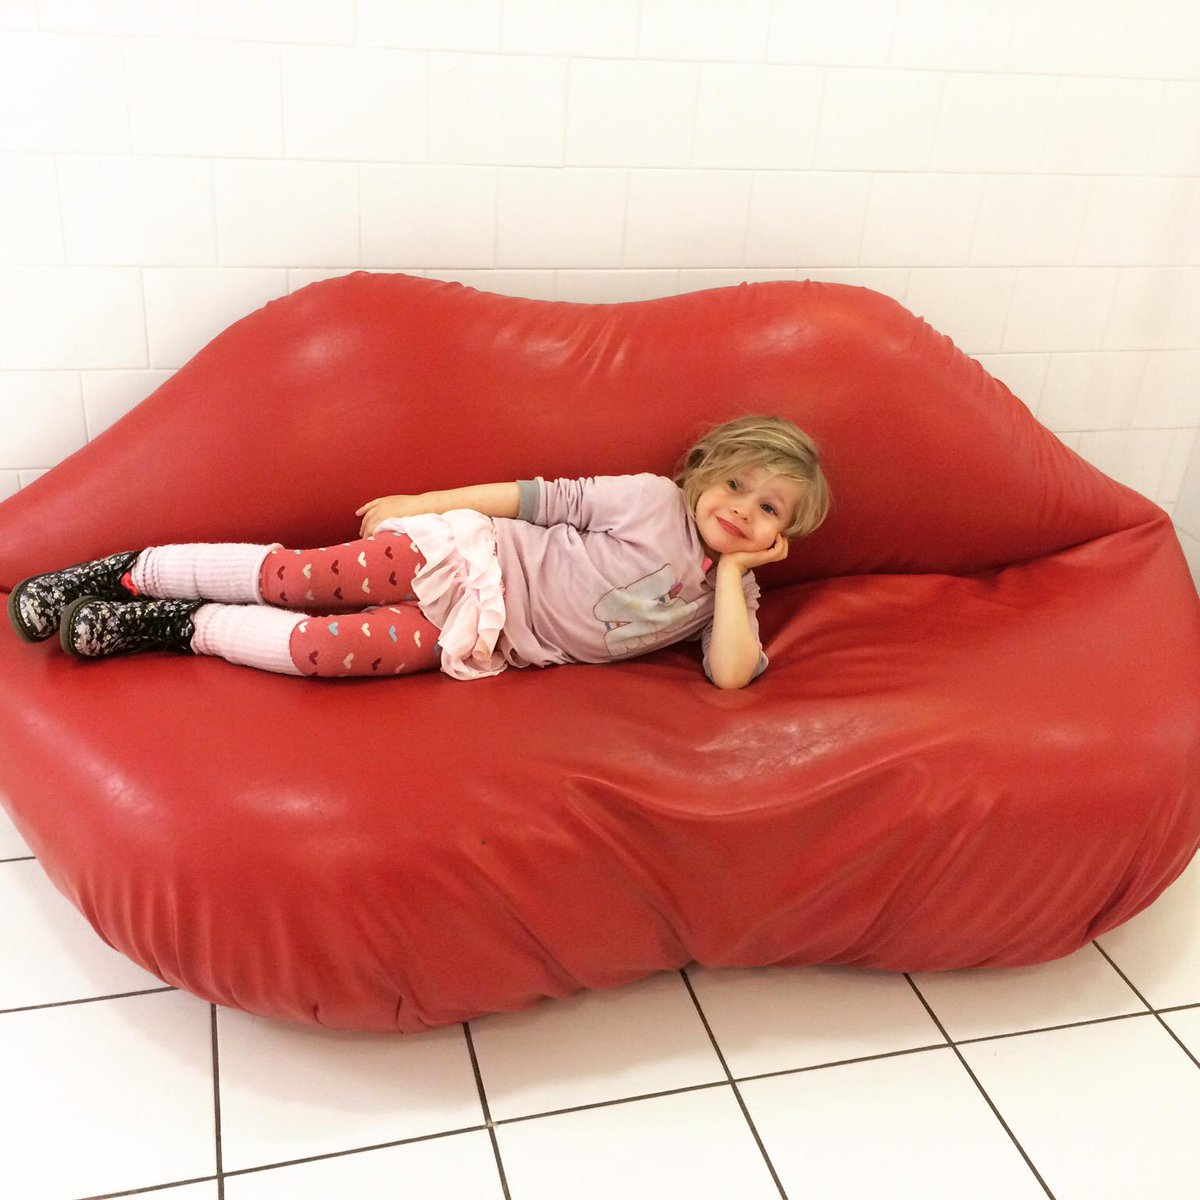 I am giving everyone a big kiss for Valentine's Day!! http://t.co/nRz1B2OOGU